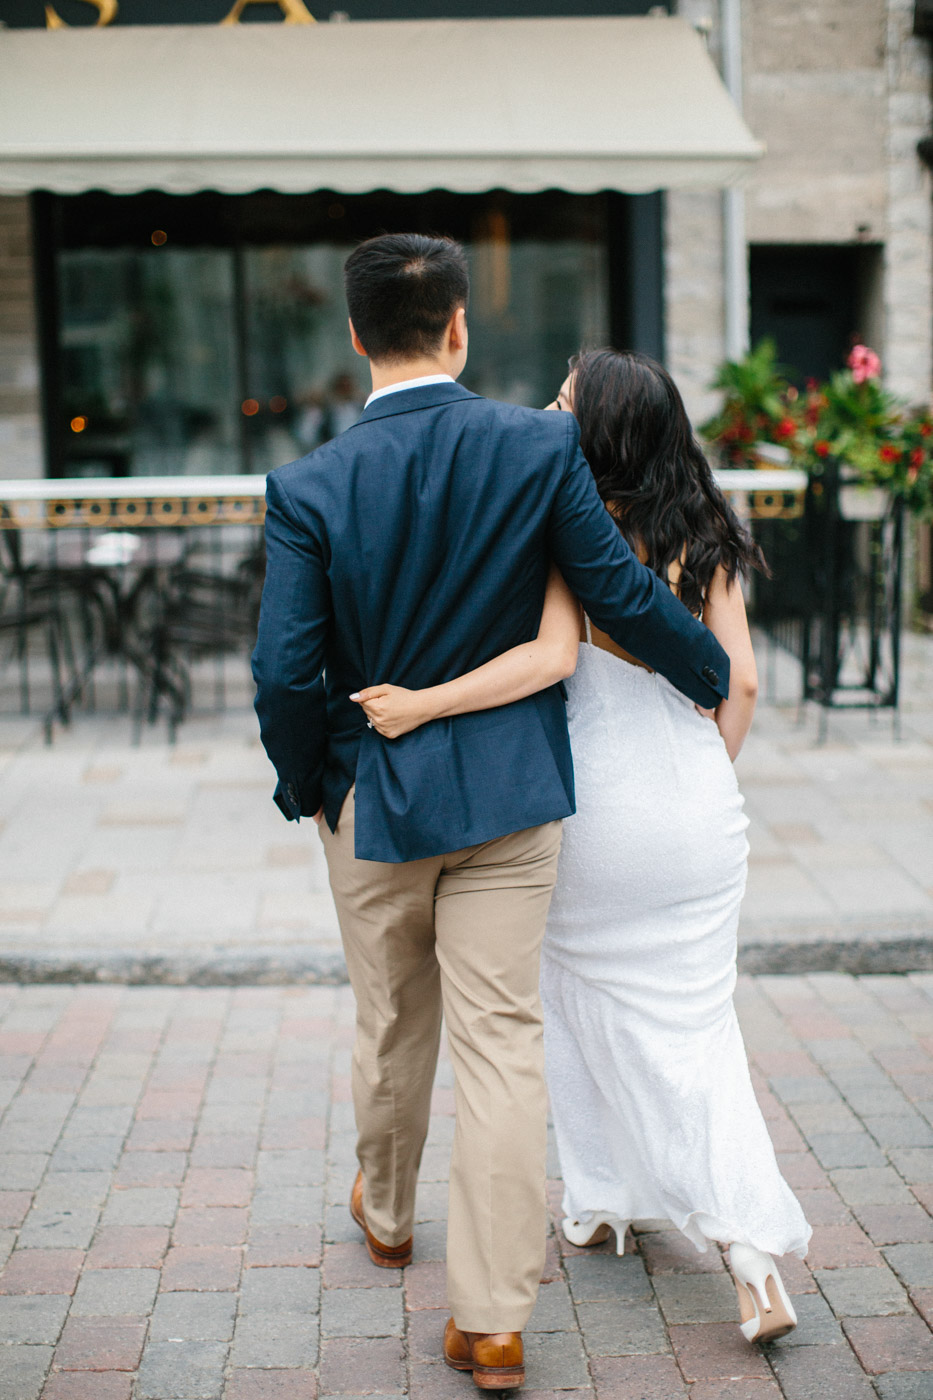 toronto_wedding_photographer_engagement_photography_tips-44.jpg